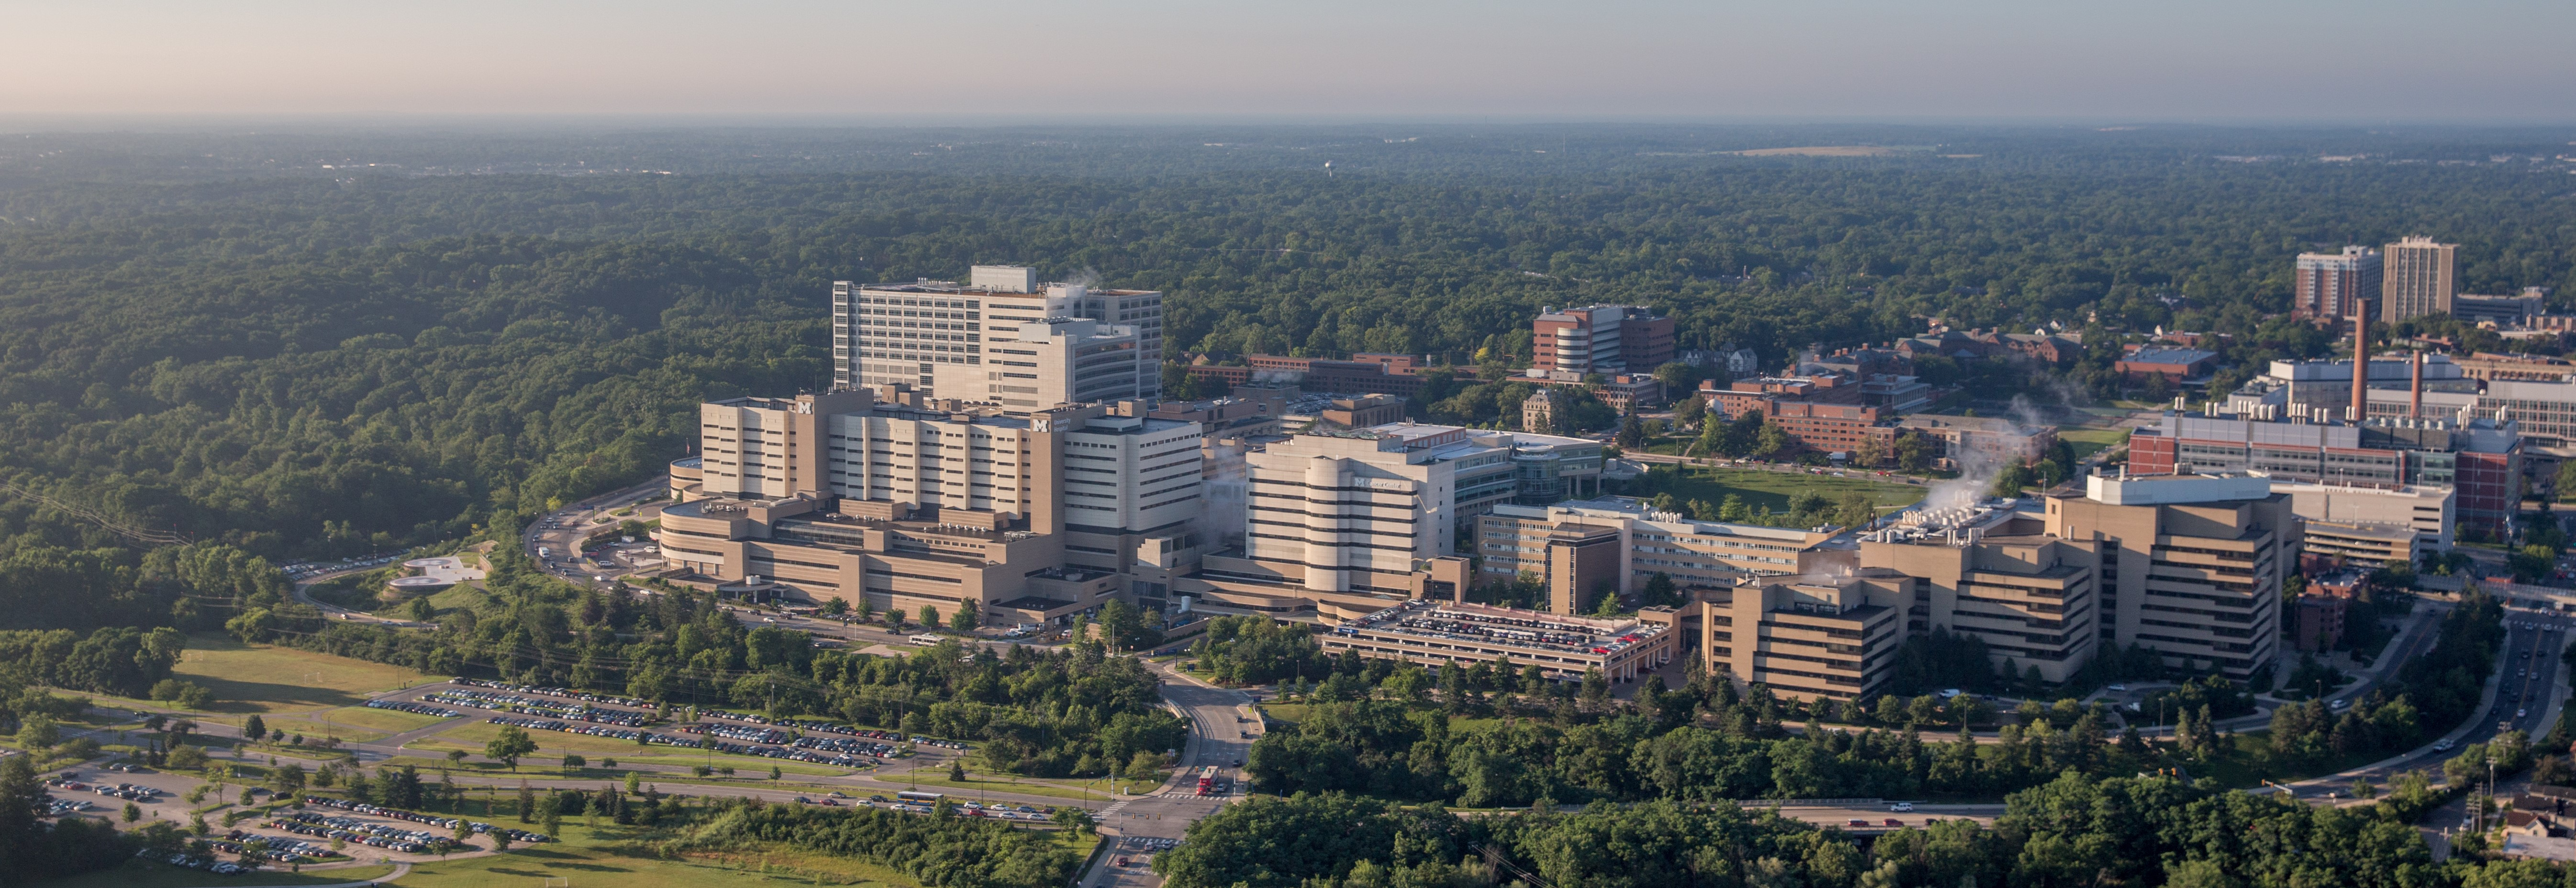 Aerial view of University of Michigan medical campus